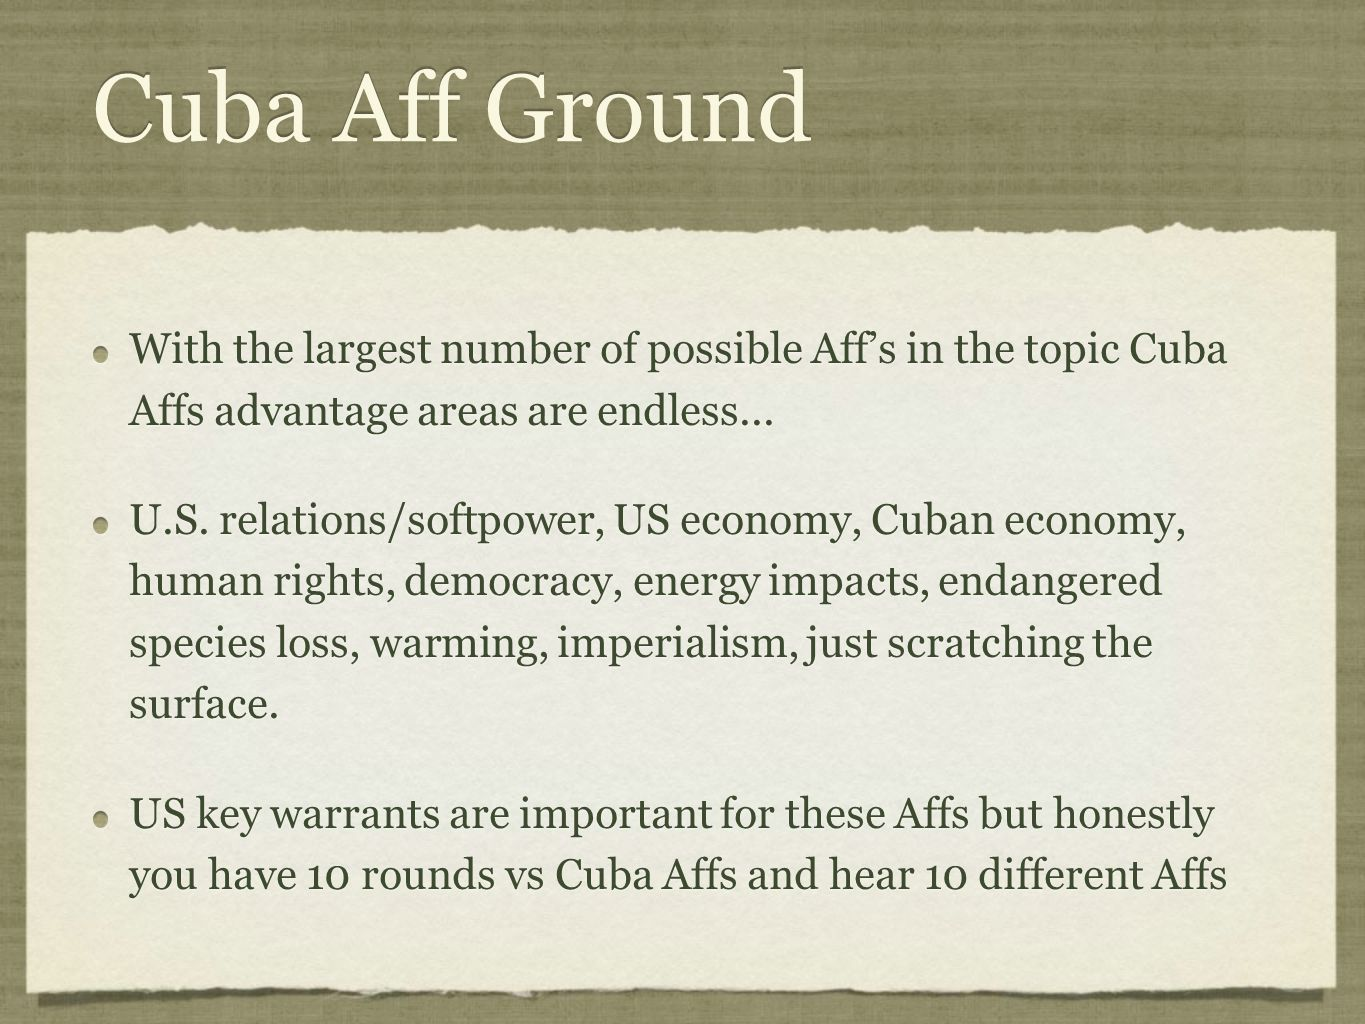 Cuba Aff Ground With the largest number of possible Aff's in the topic Cuba Affs advantage areas are endless...